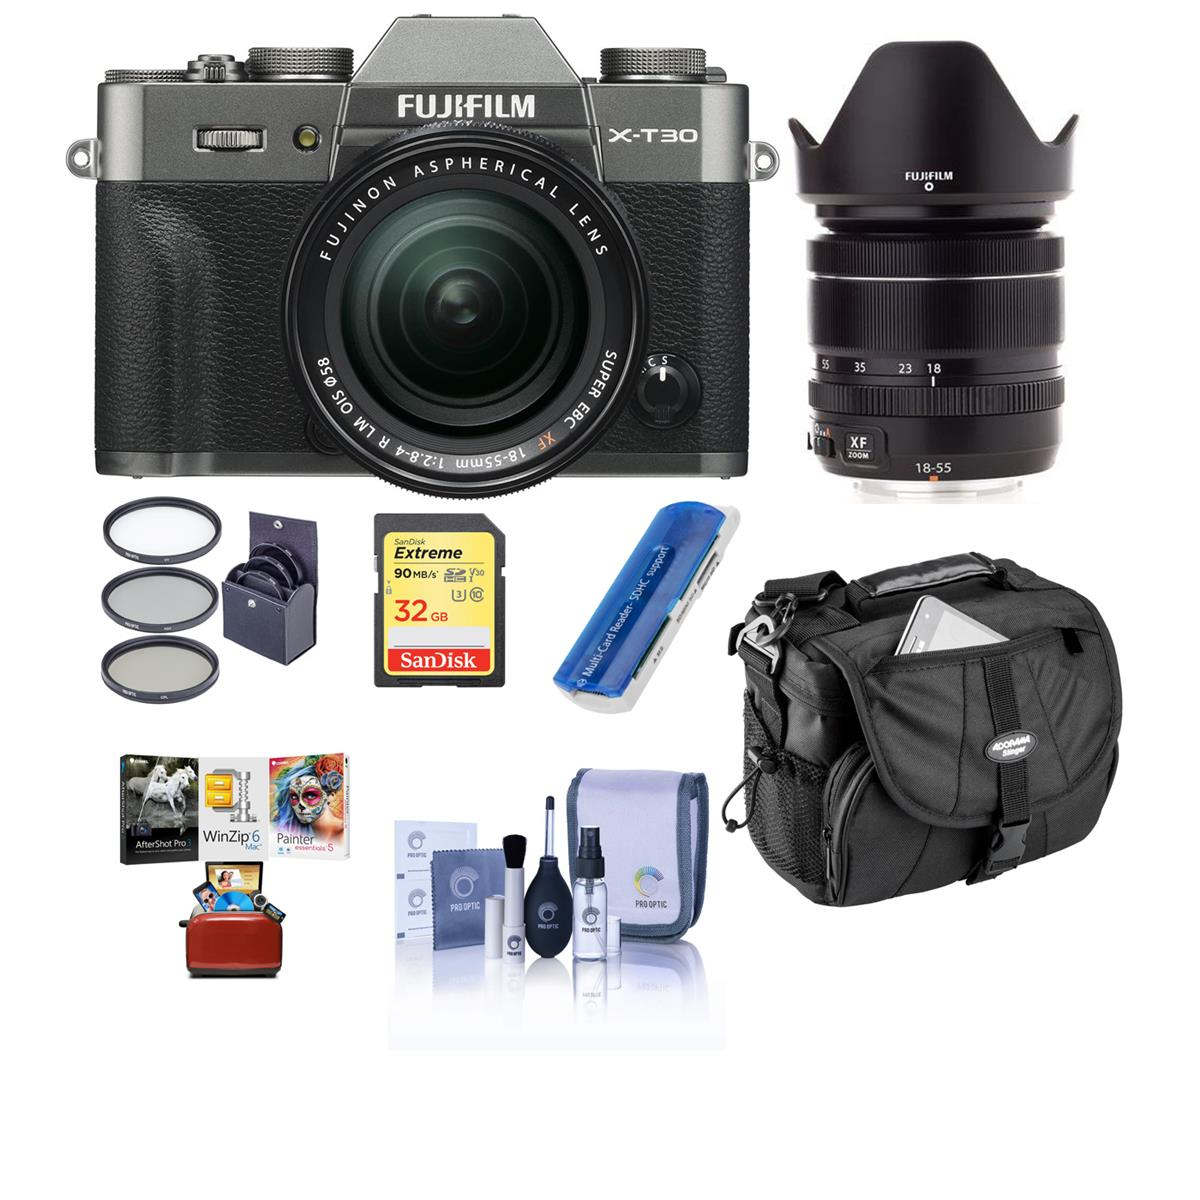 Hot Deal: Fujifilm X-T30 Charcoal Silver with XF 18-55mm f/2.8-4 Lens W/ACC for $1,199 at Adorama